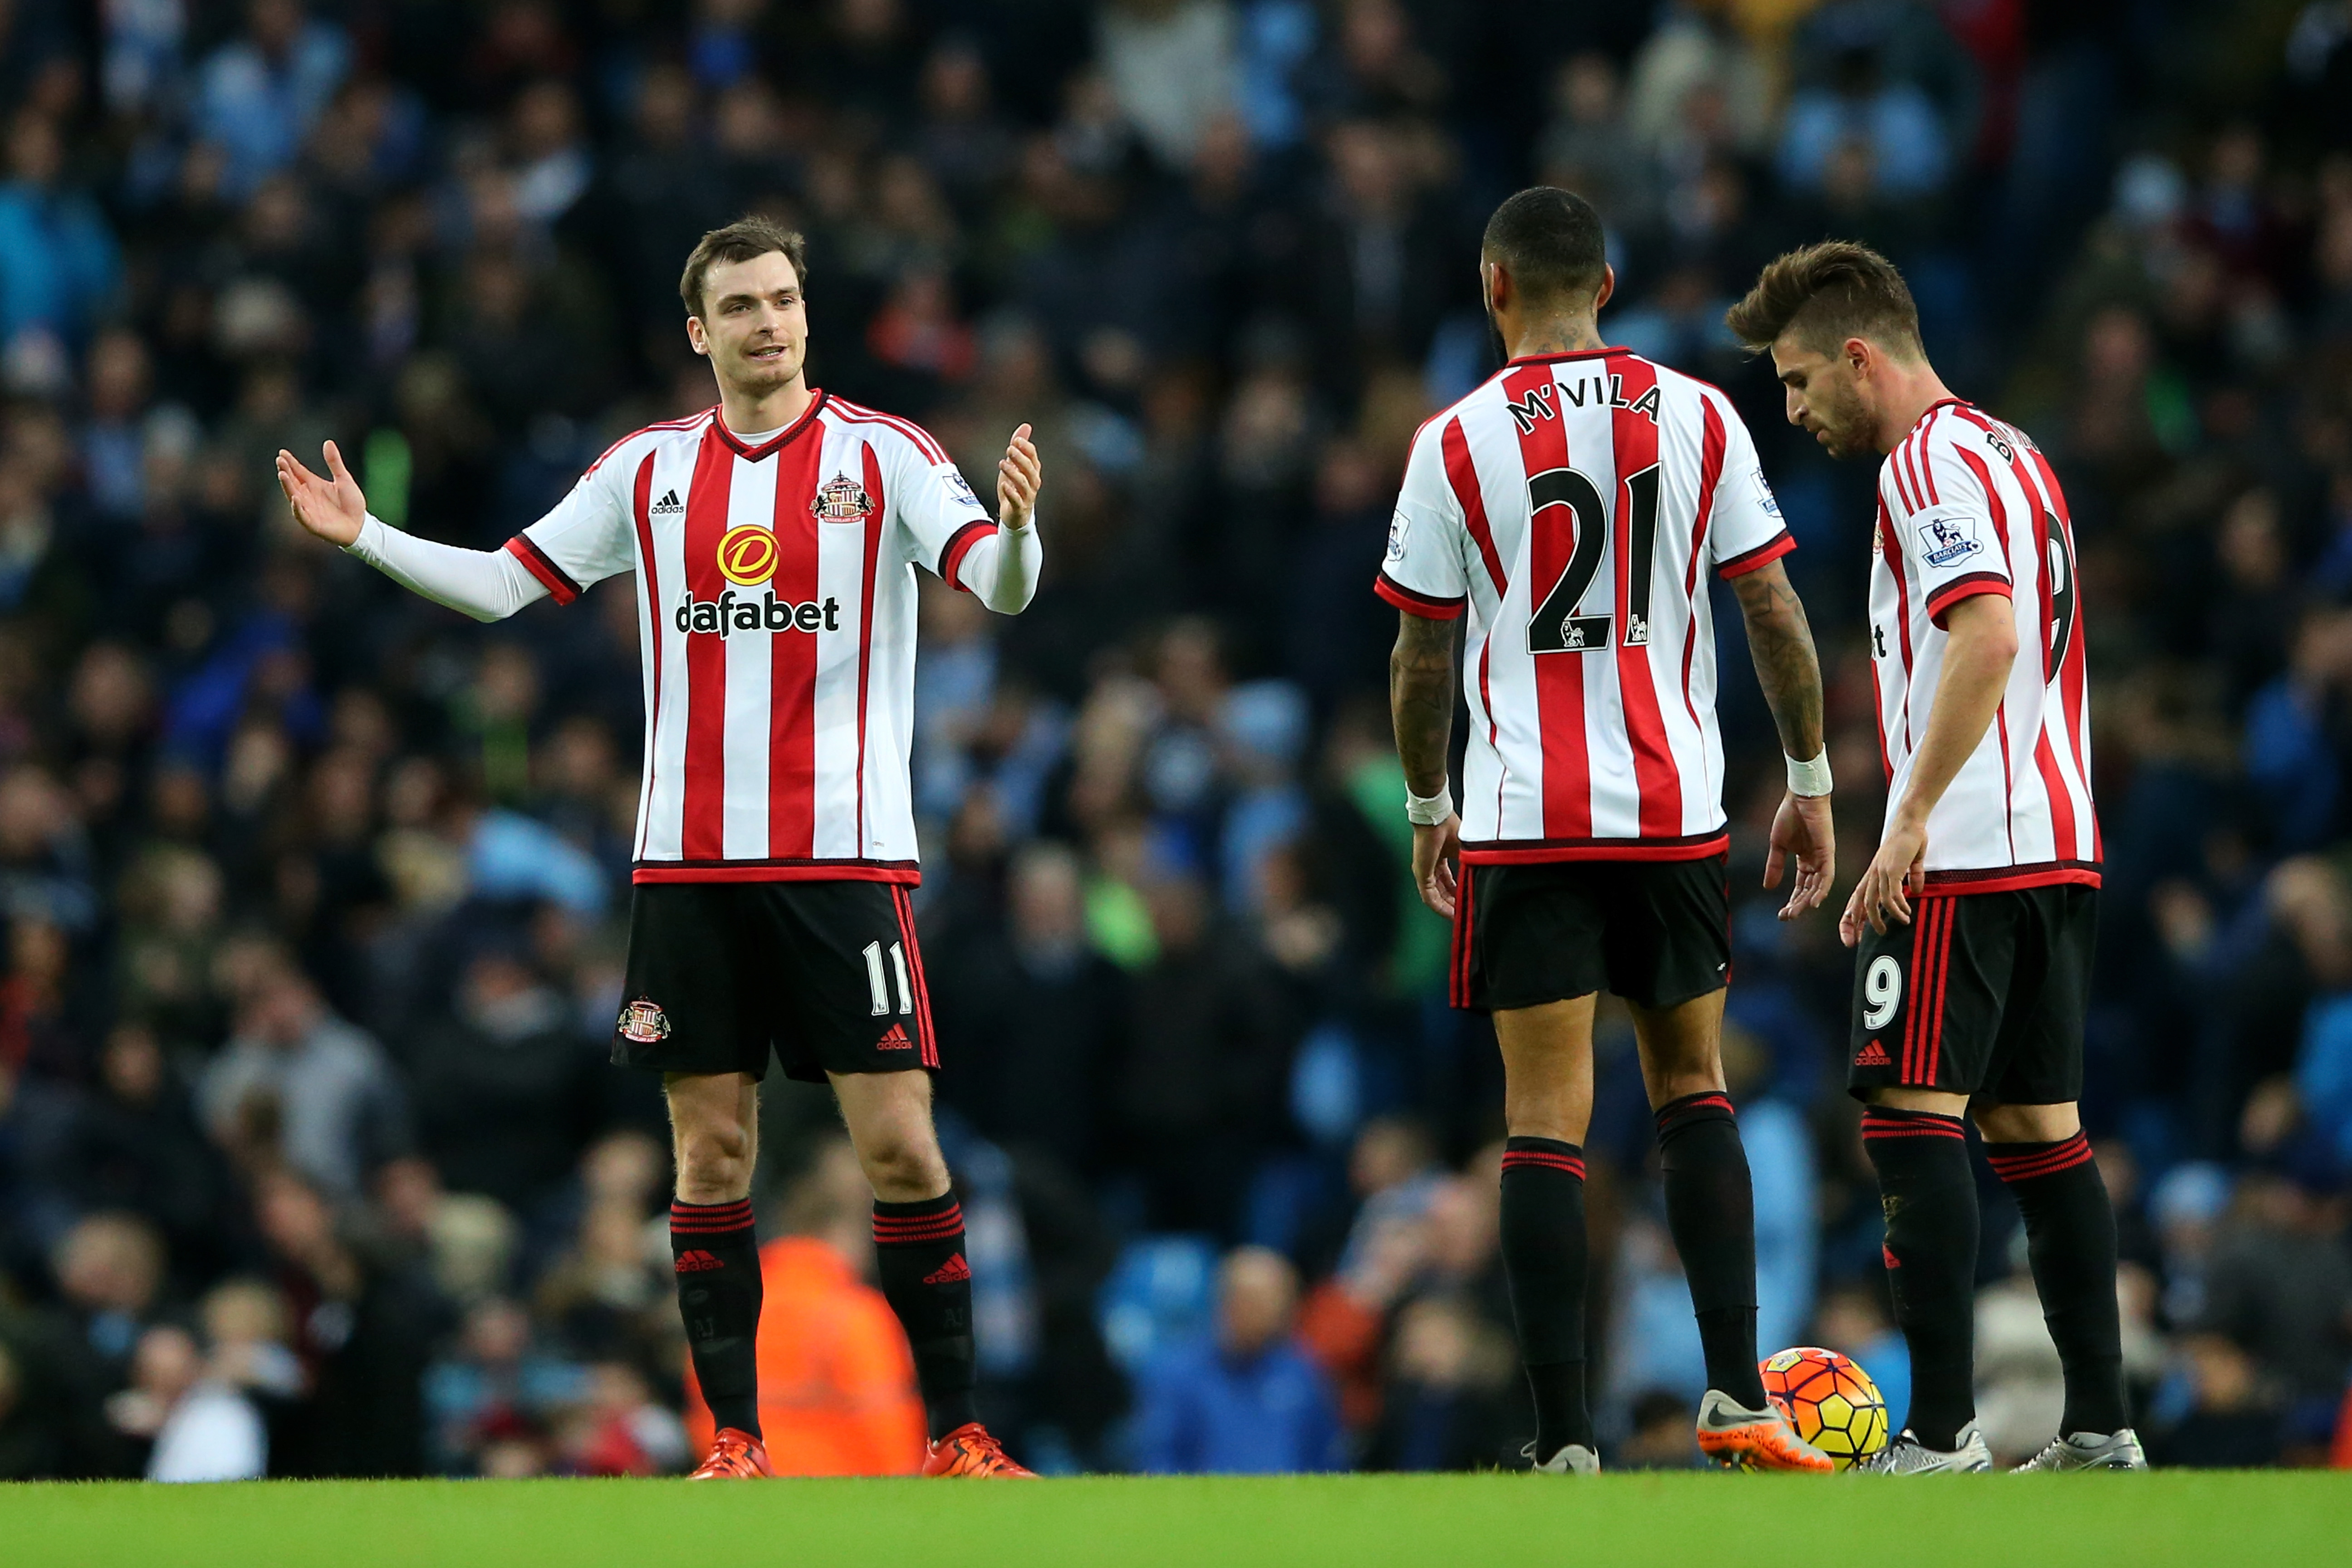 Adam Johnson Starts Prison Football Team With Other Paedos And Perverts GettyImages 502502826